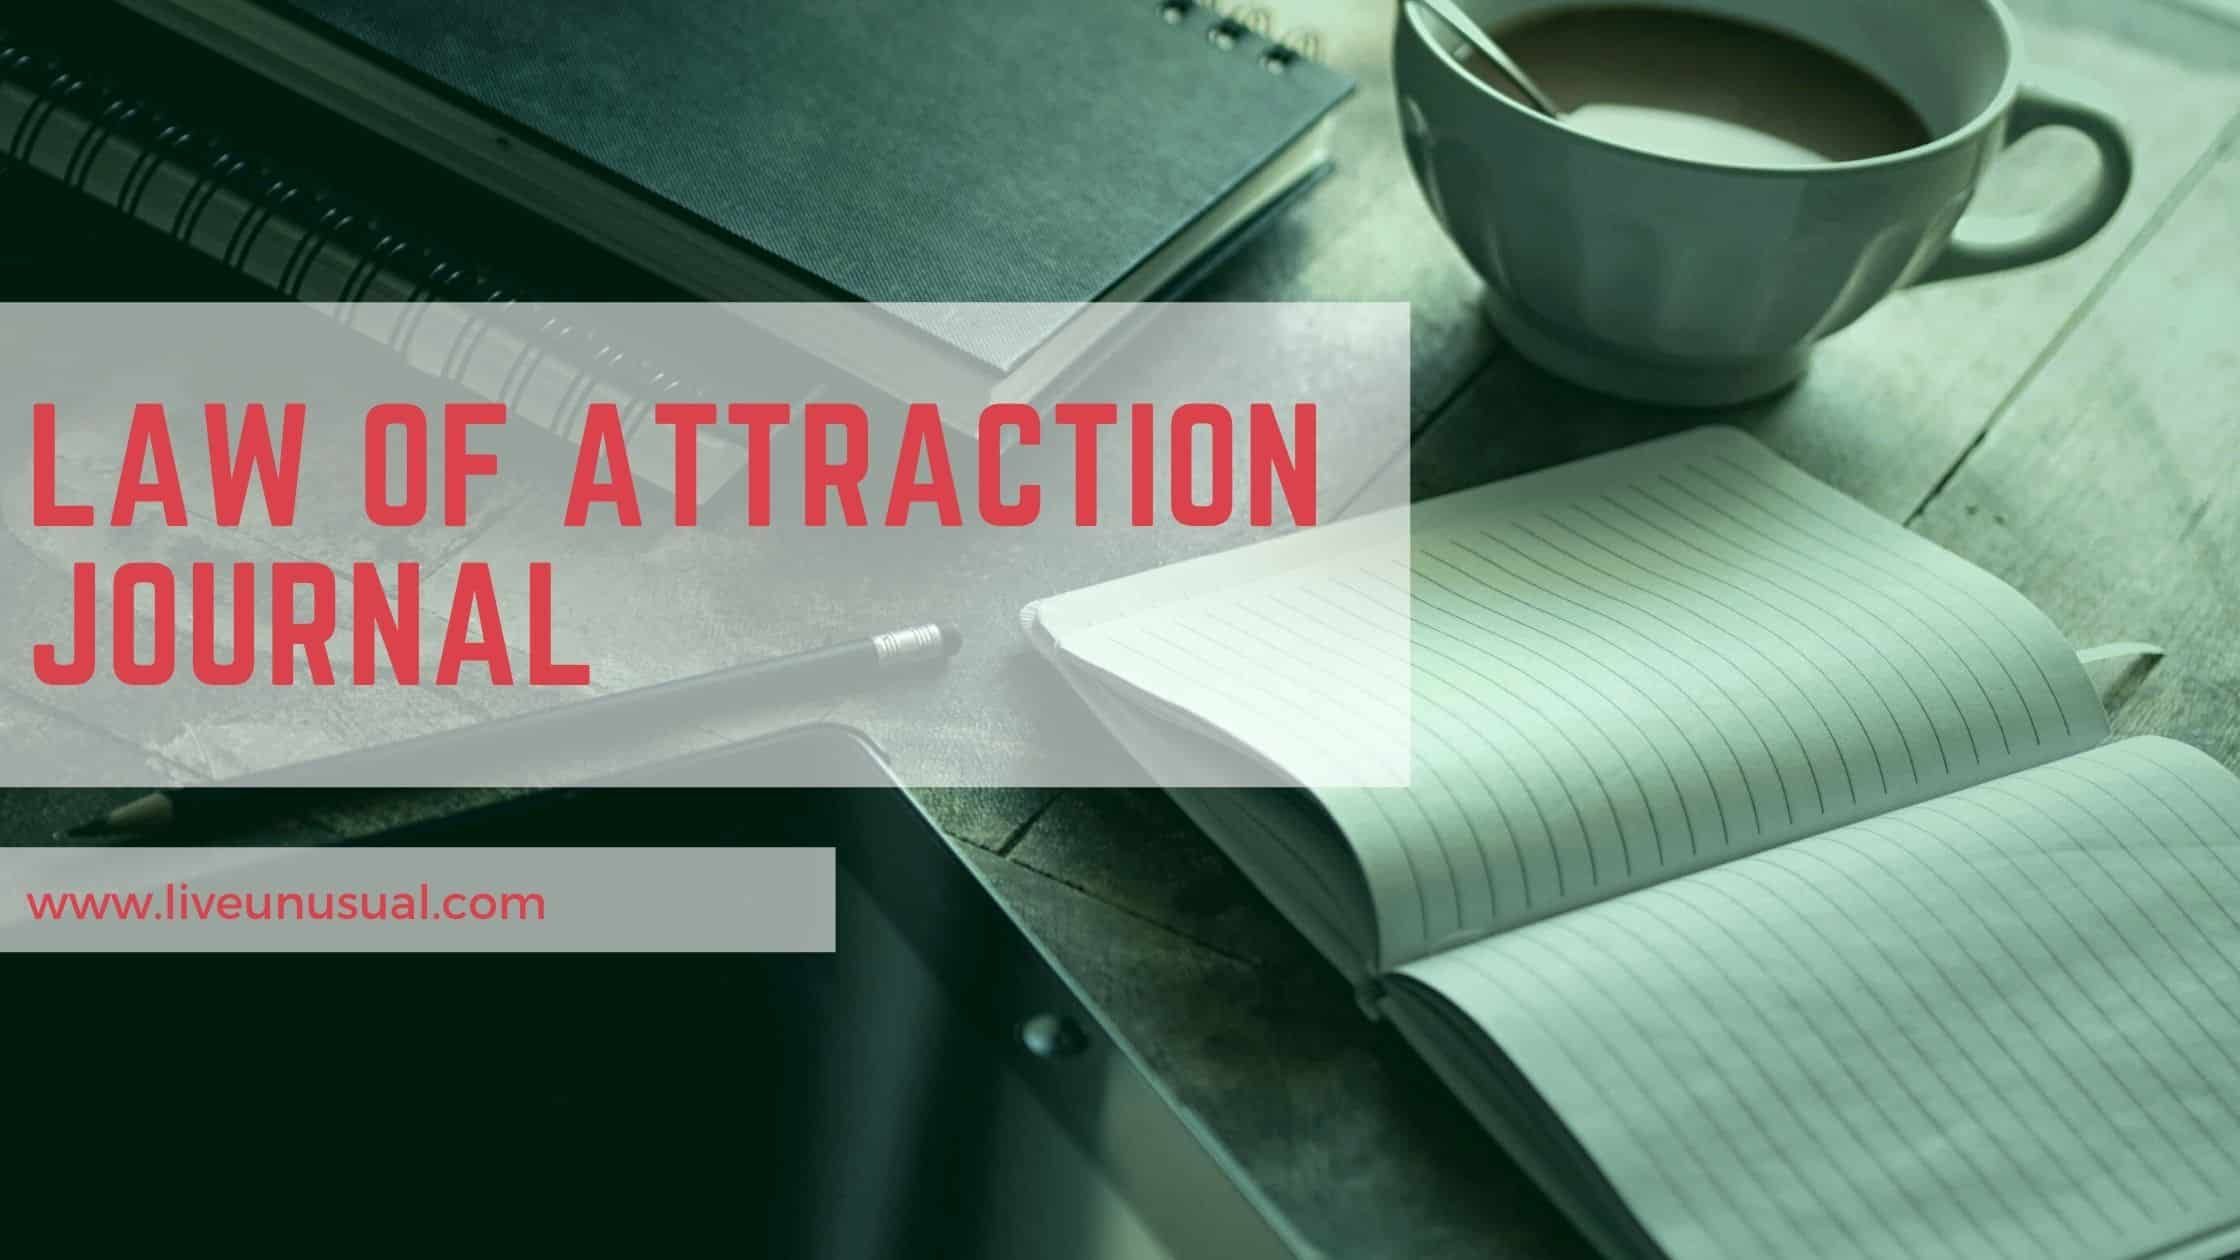 the law of attraction journal